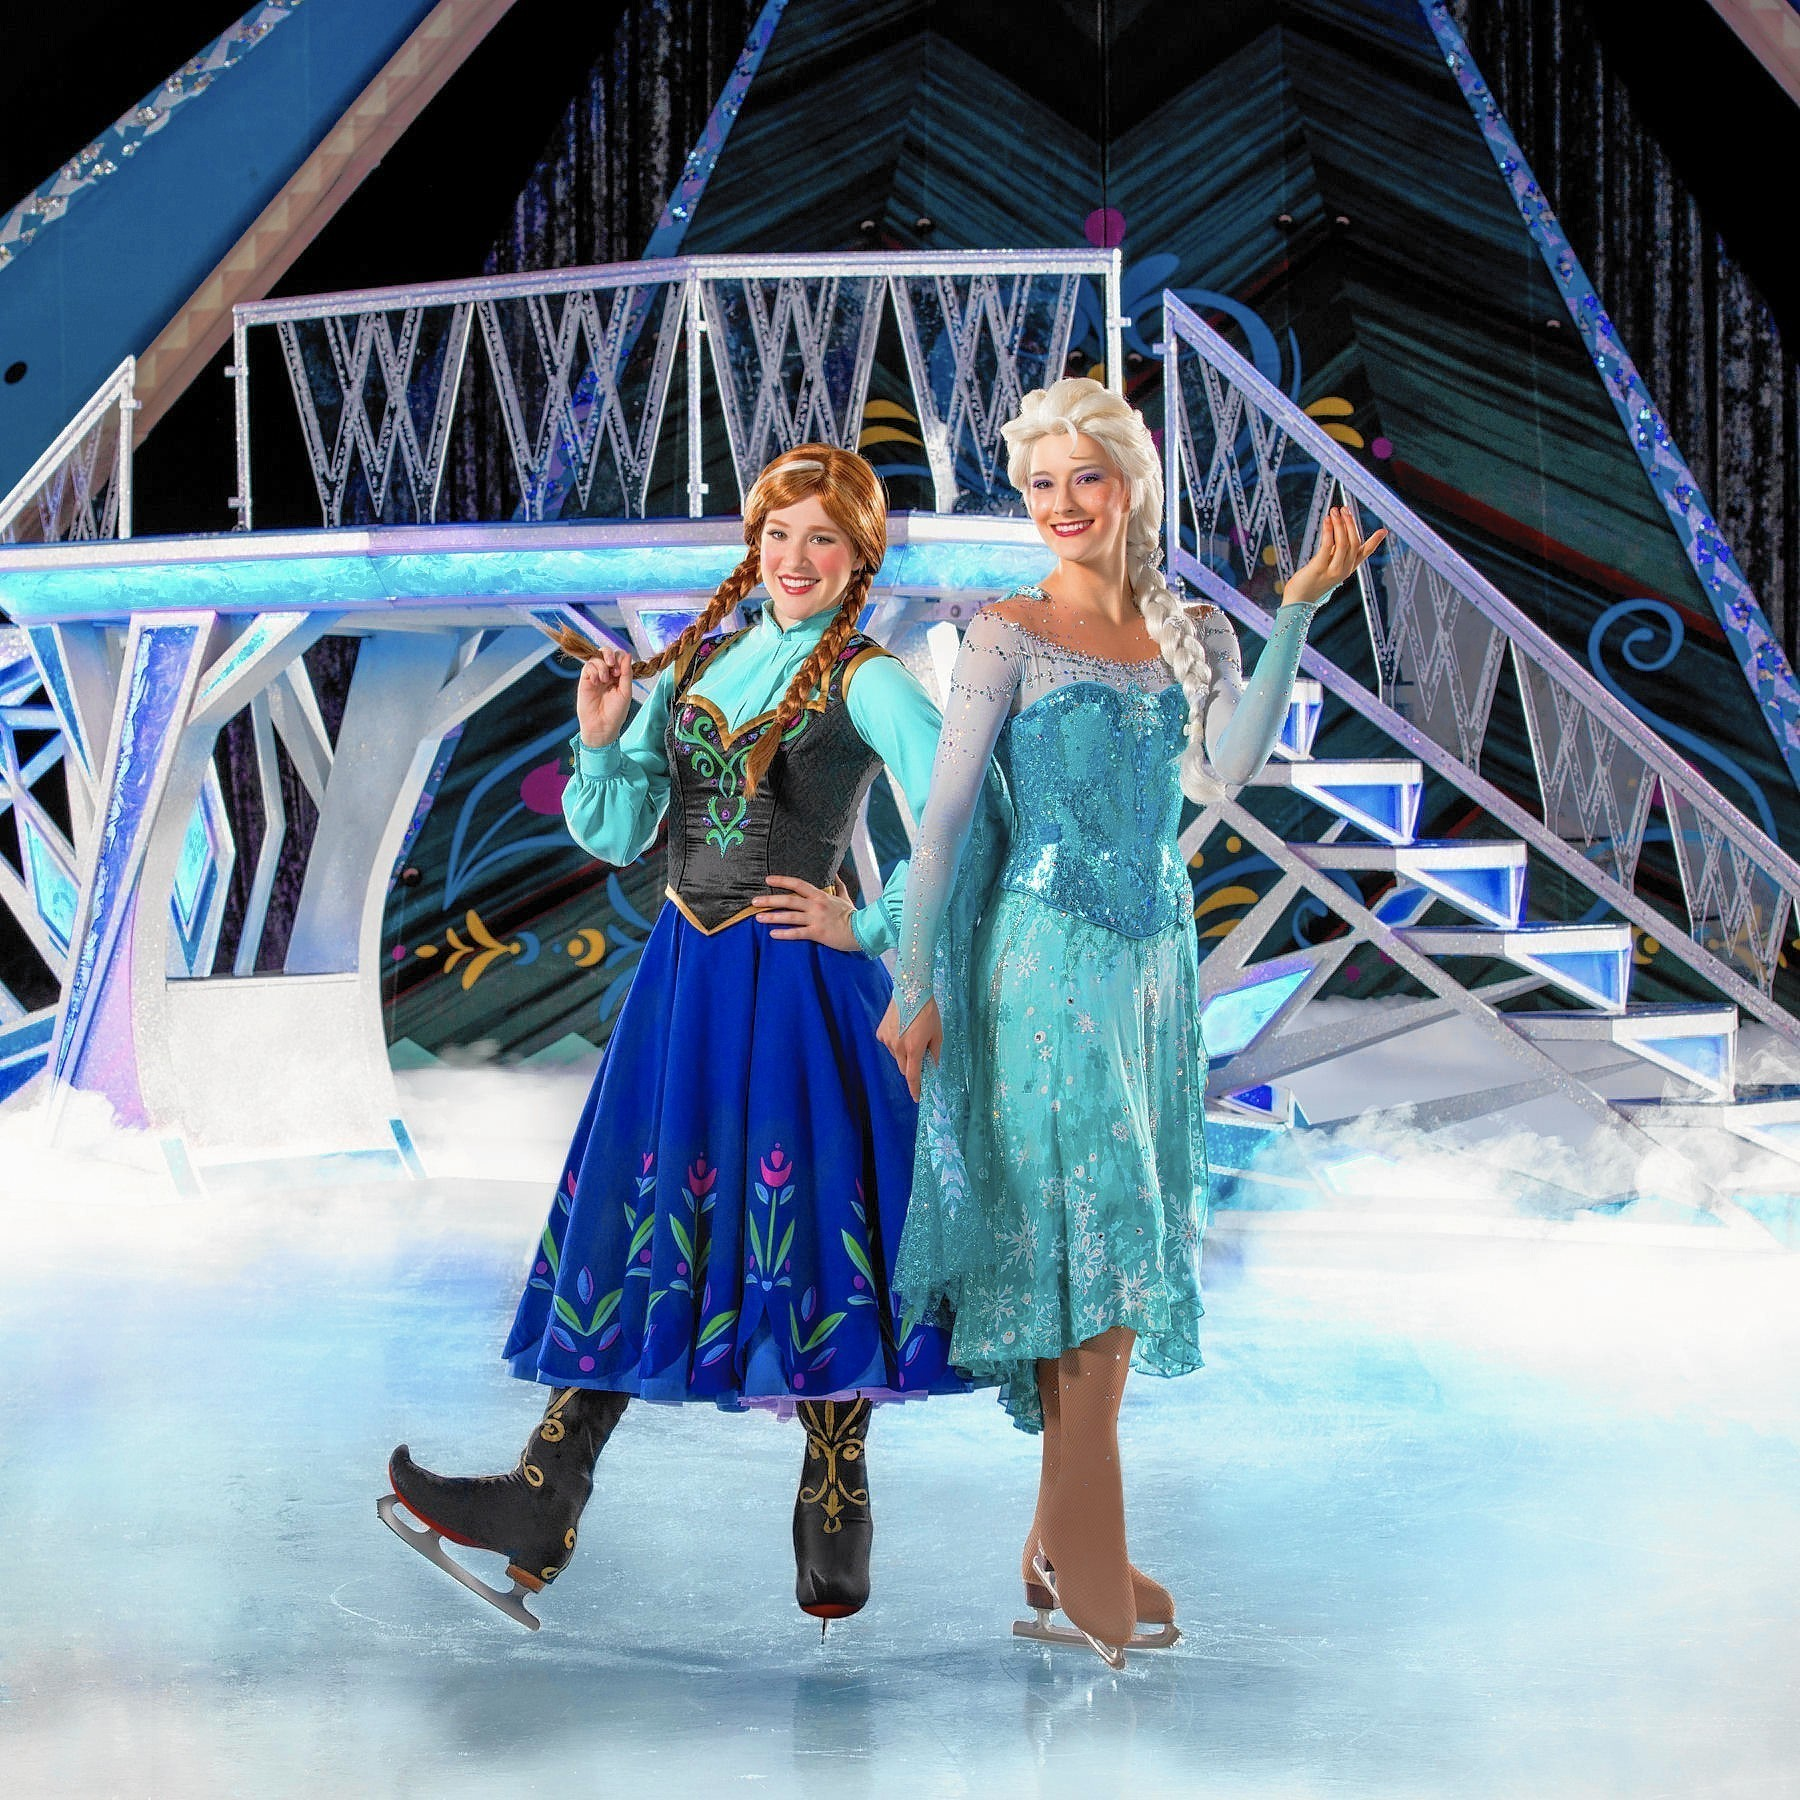 The Hit Disney Film Frozen Comes Alive In An Ice Show Complete